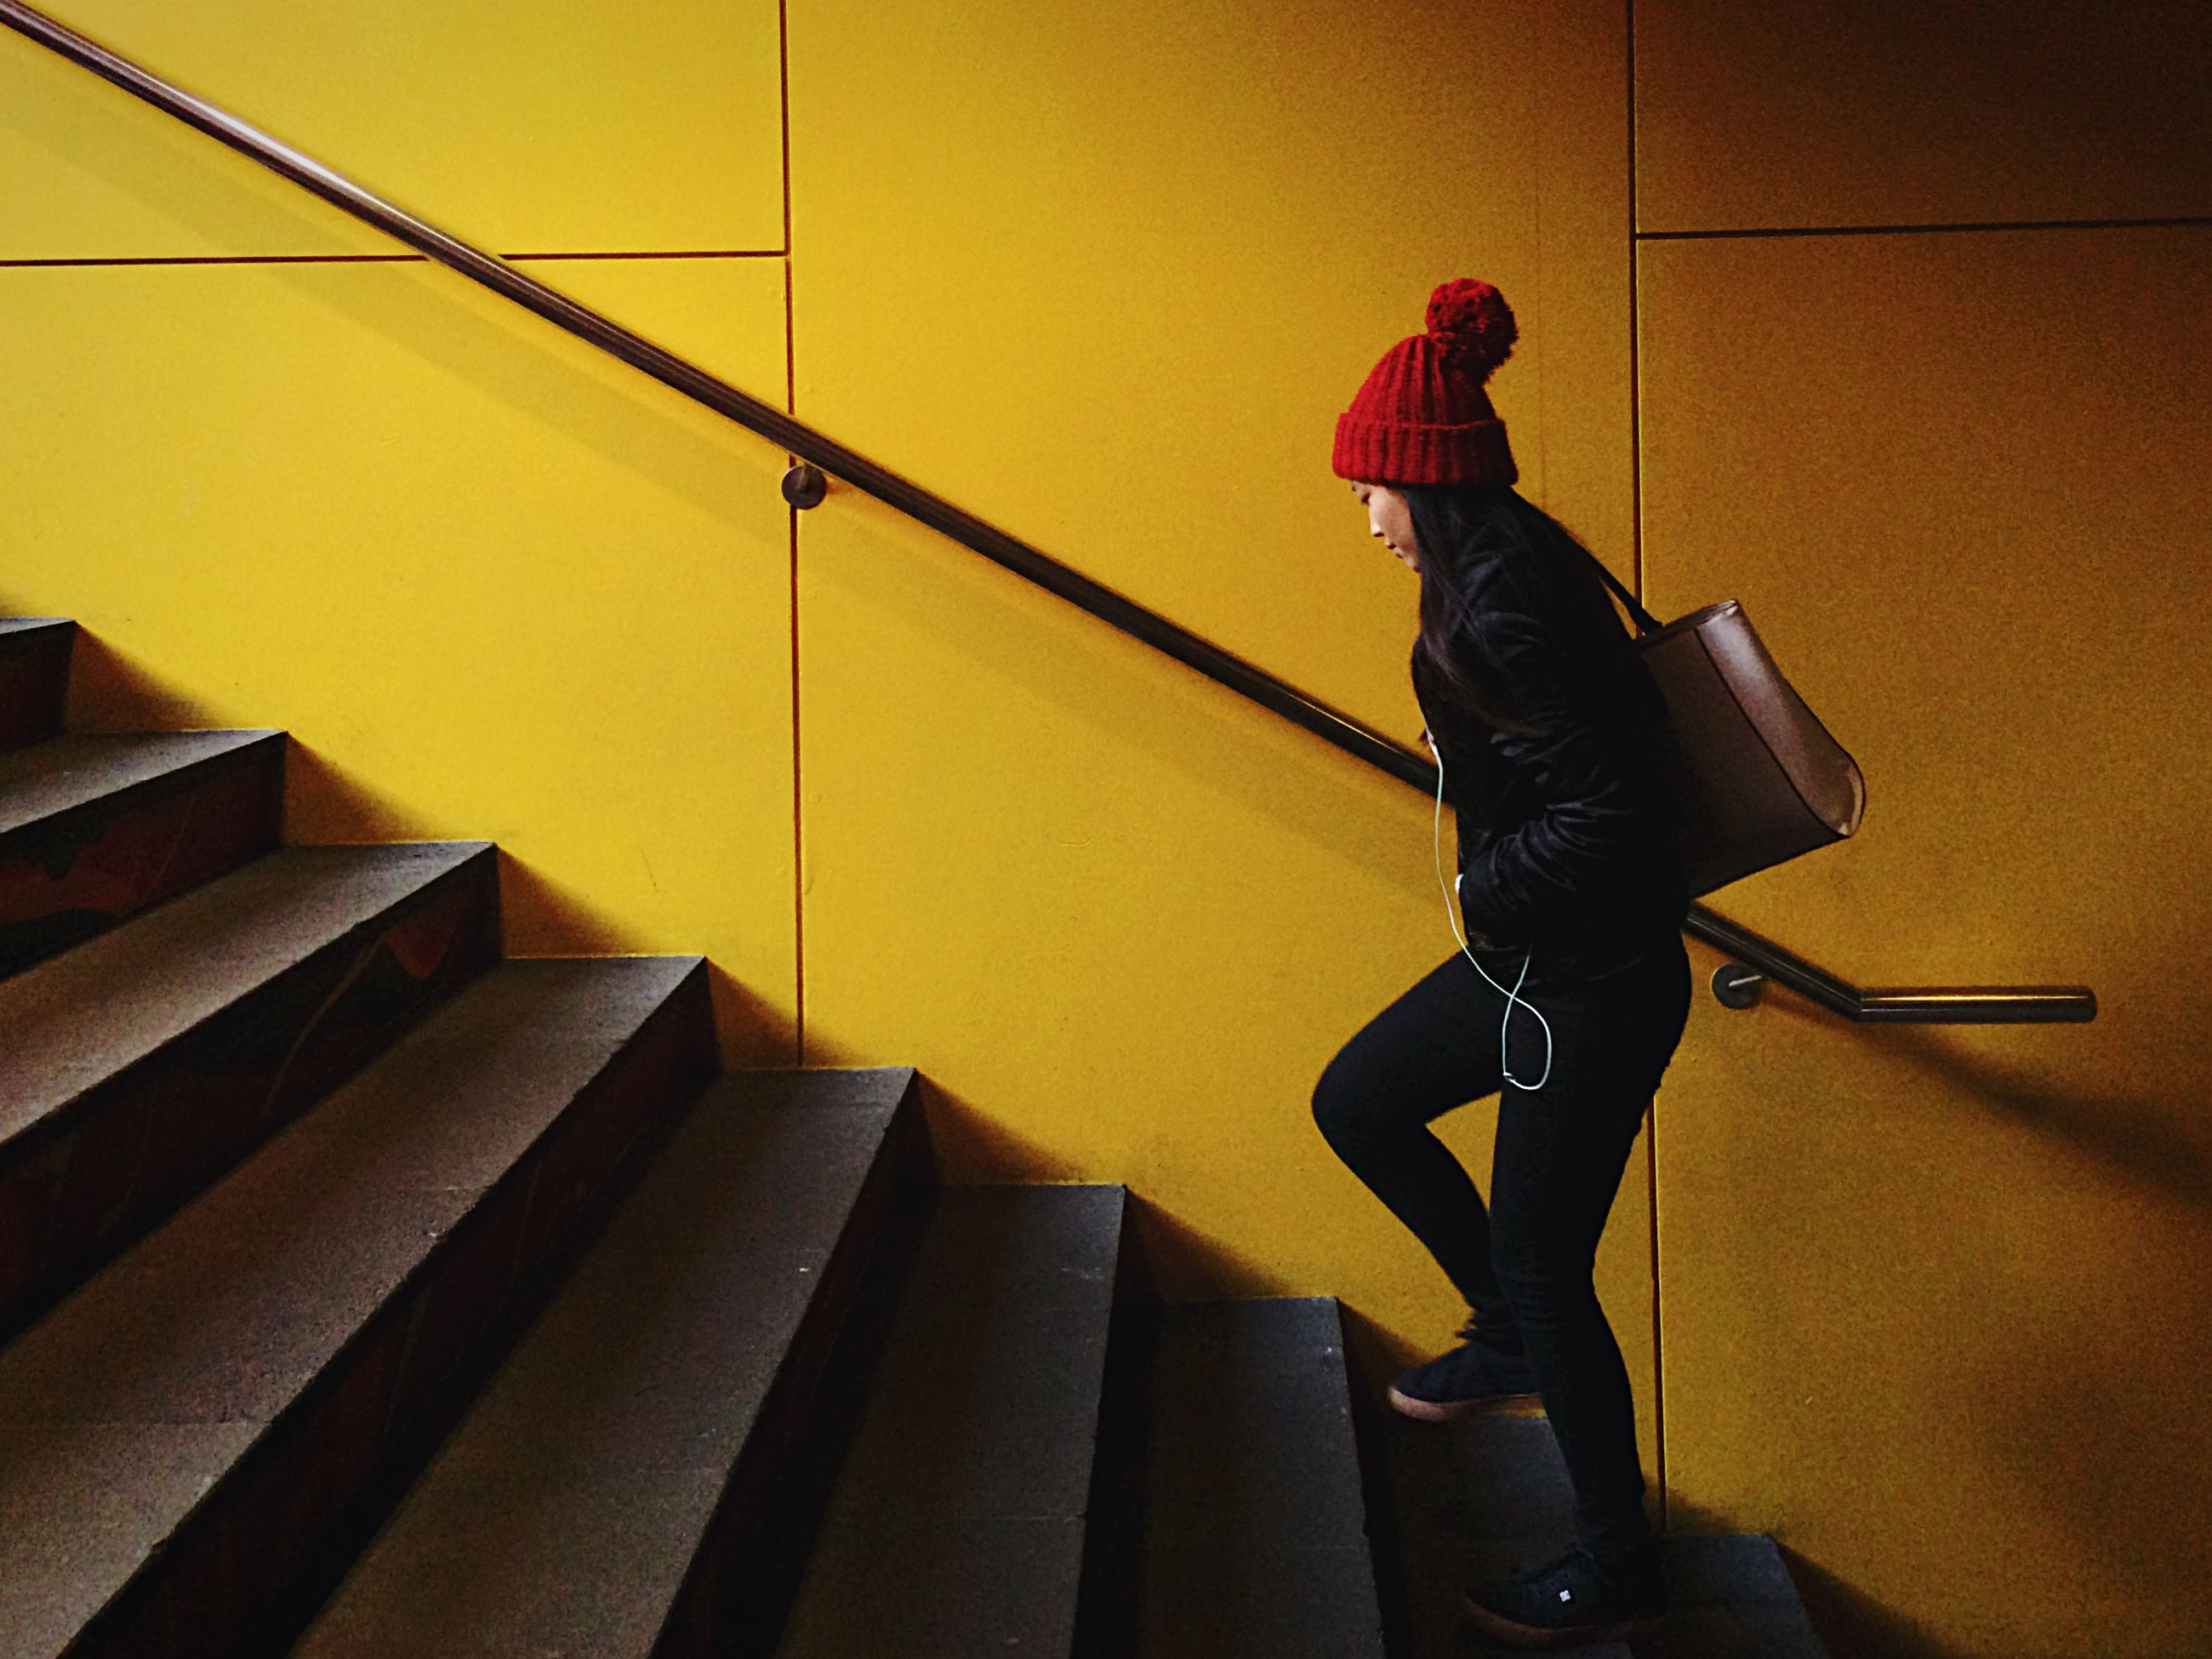 indoors, steps, lifestyles, wall - building feature, technology, staircase, steps and staircases, high angle view, yellow, musical instrument, music, built structure, leisure activity, standing, architecture, men, casual clothing, full length